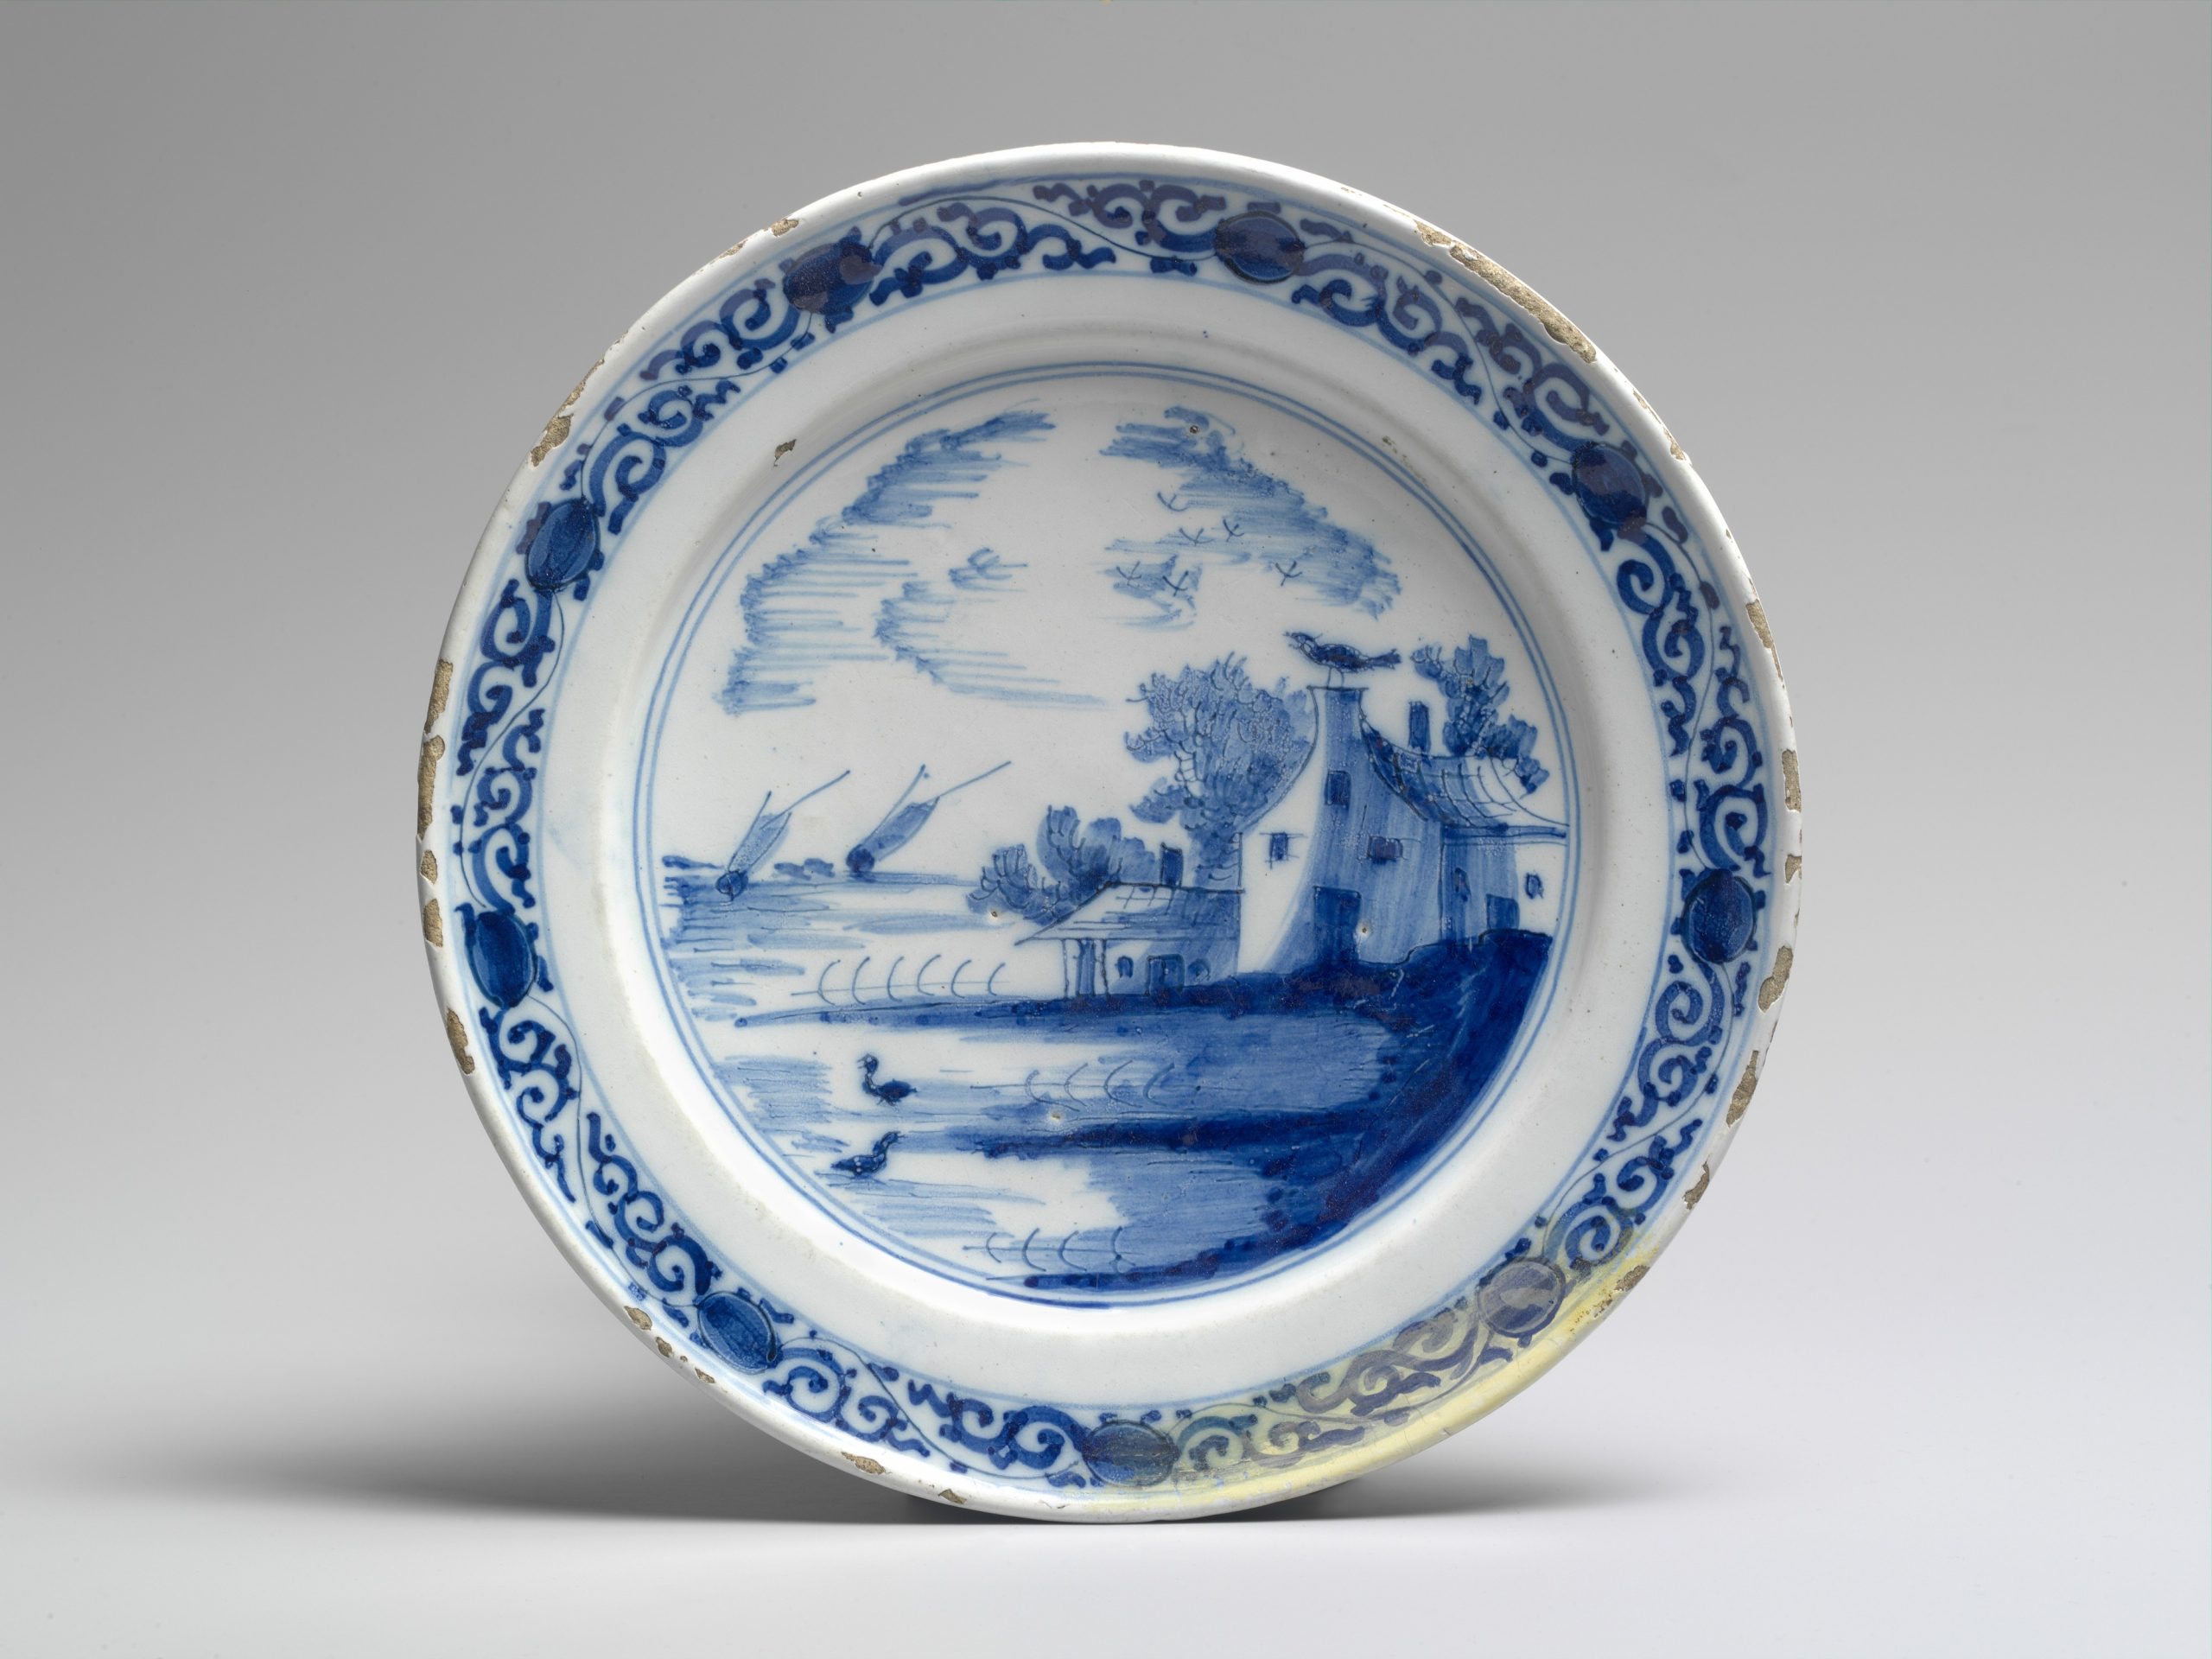 Image of a blue and white painted plate.